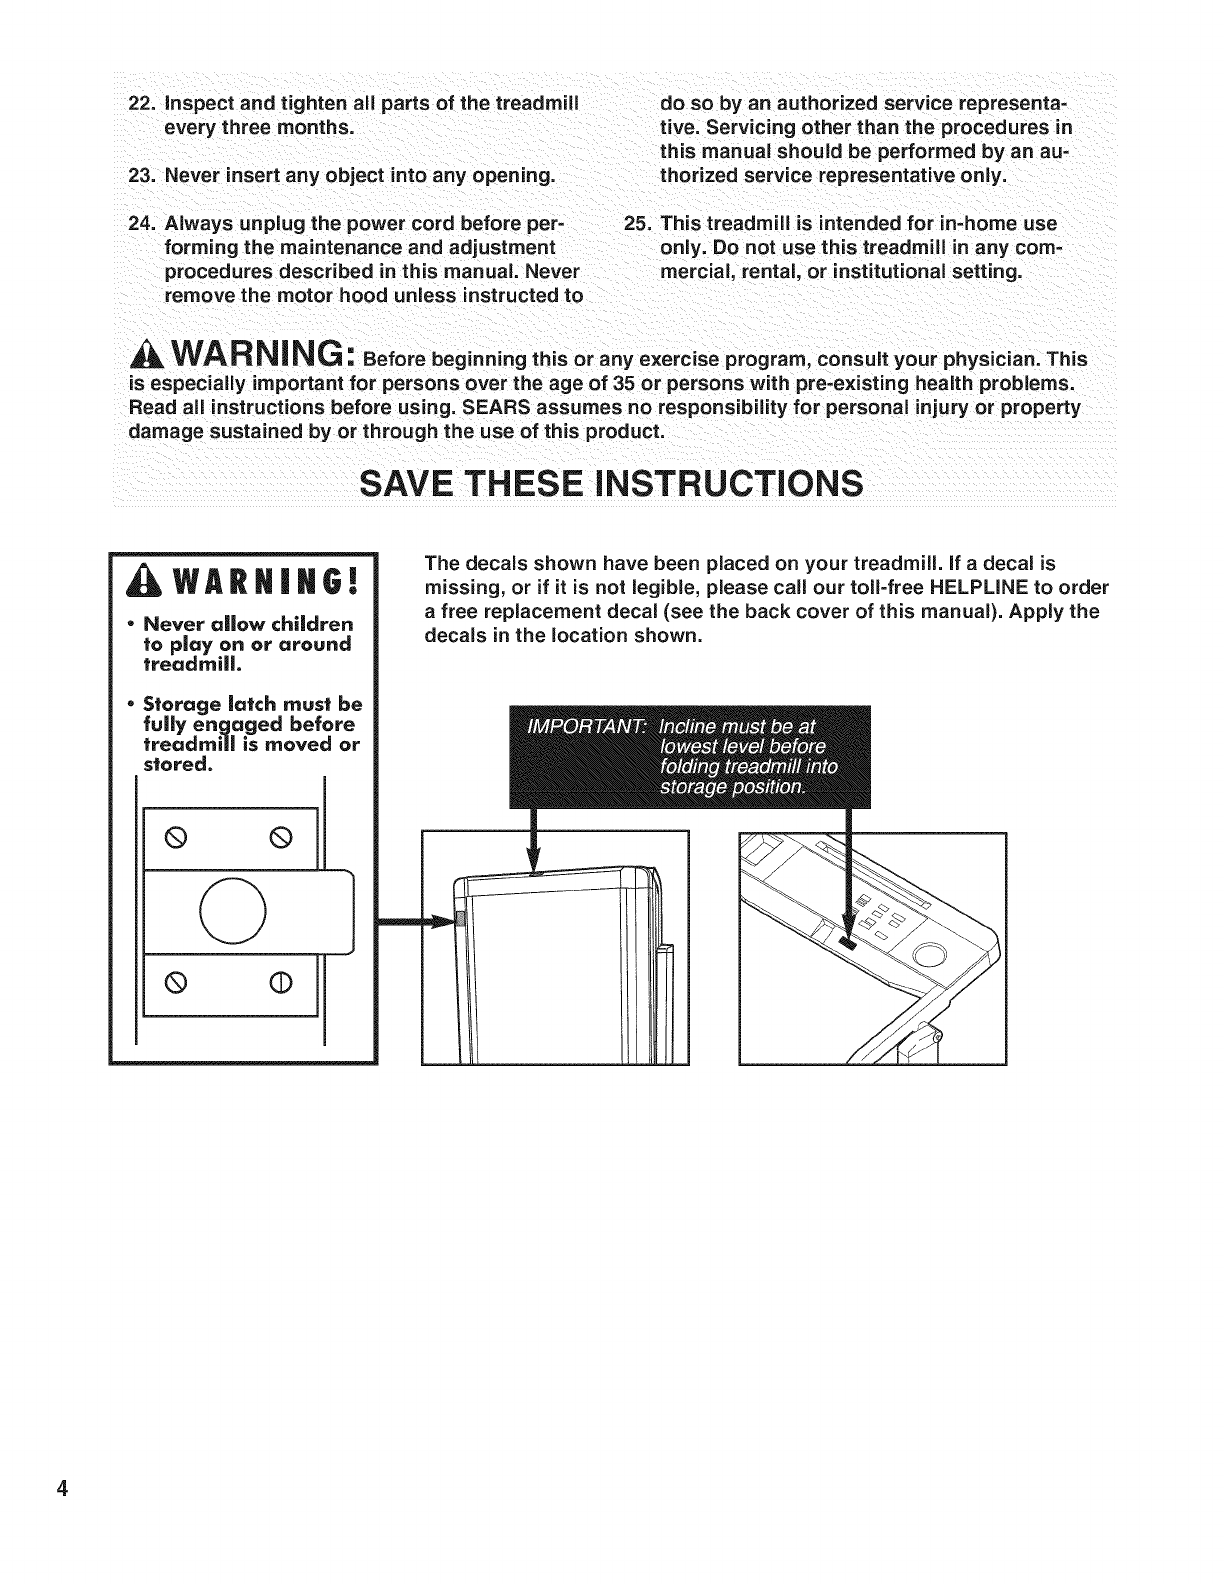 Sears Treadmill Motor Wiring Diagram 1998 Electrical Diagrams Proform 831297763 User Manual 725tl Manuals And Guides L0903349 Bridgeport Milling Machine